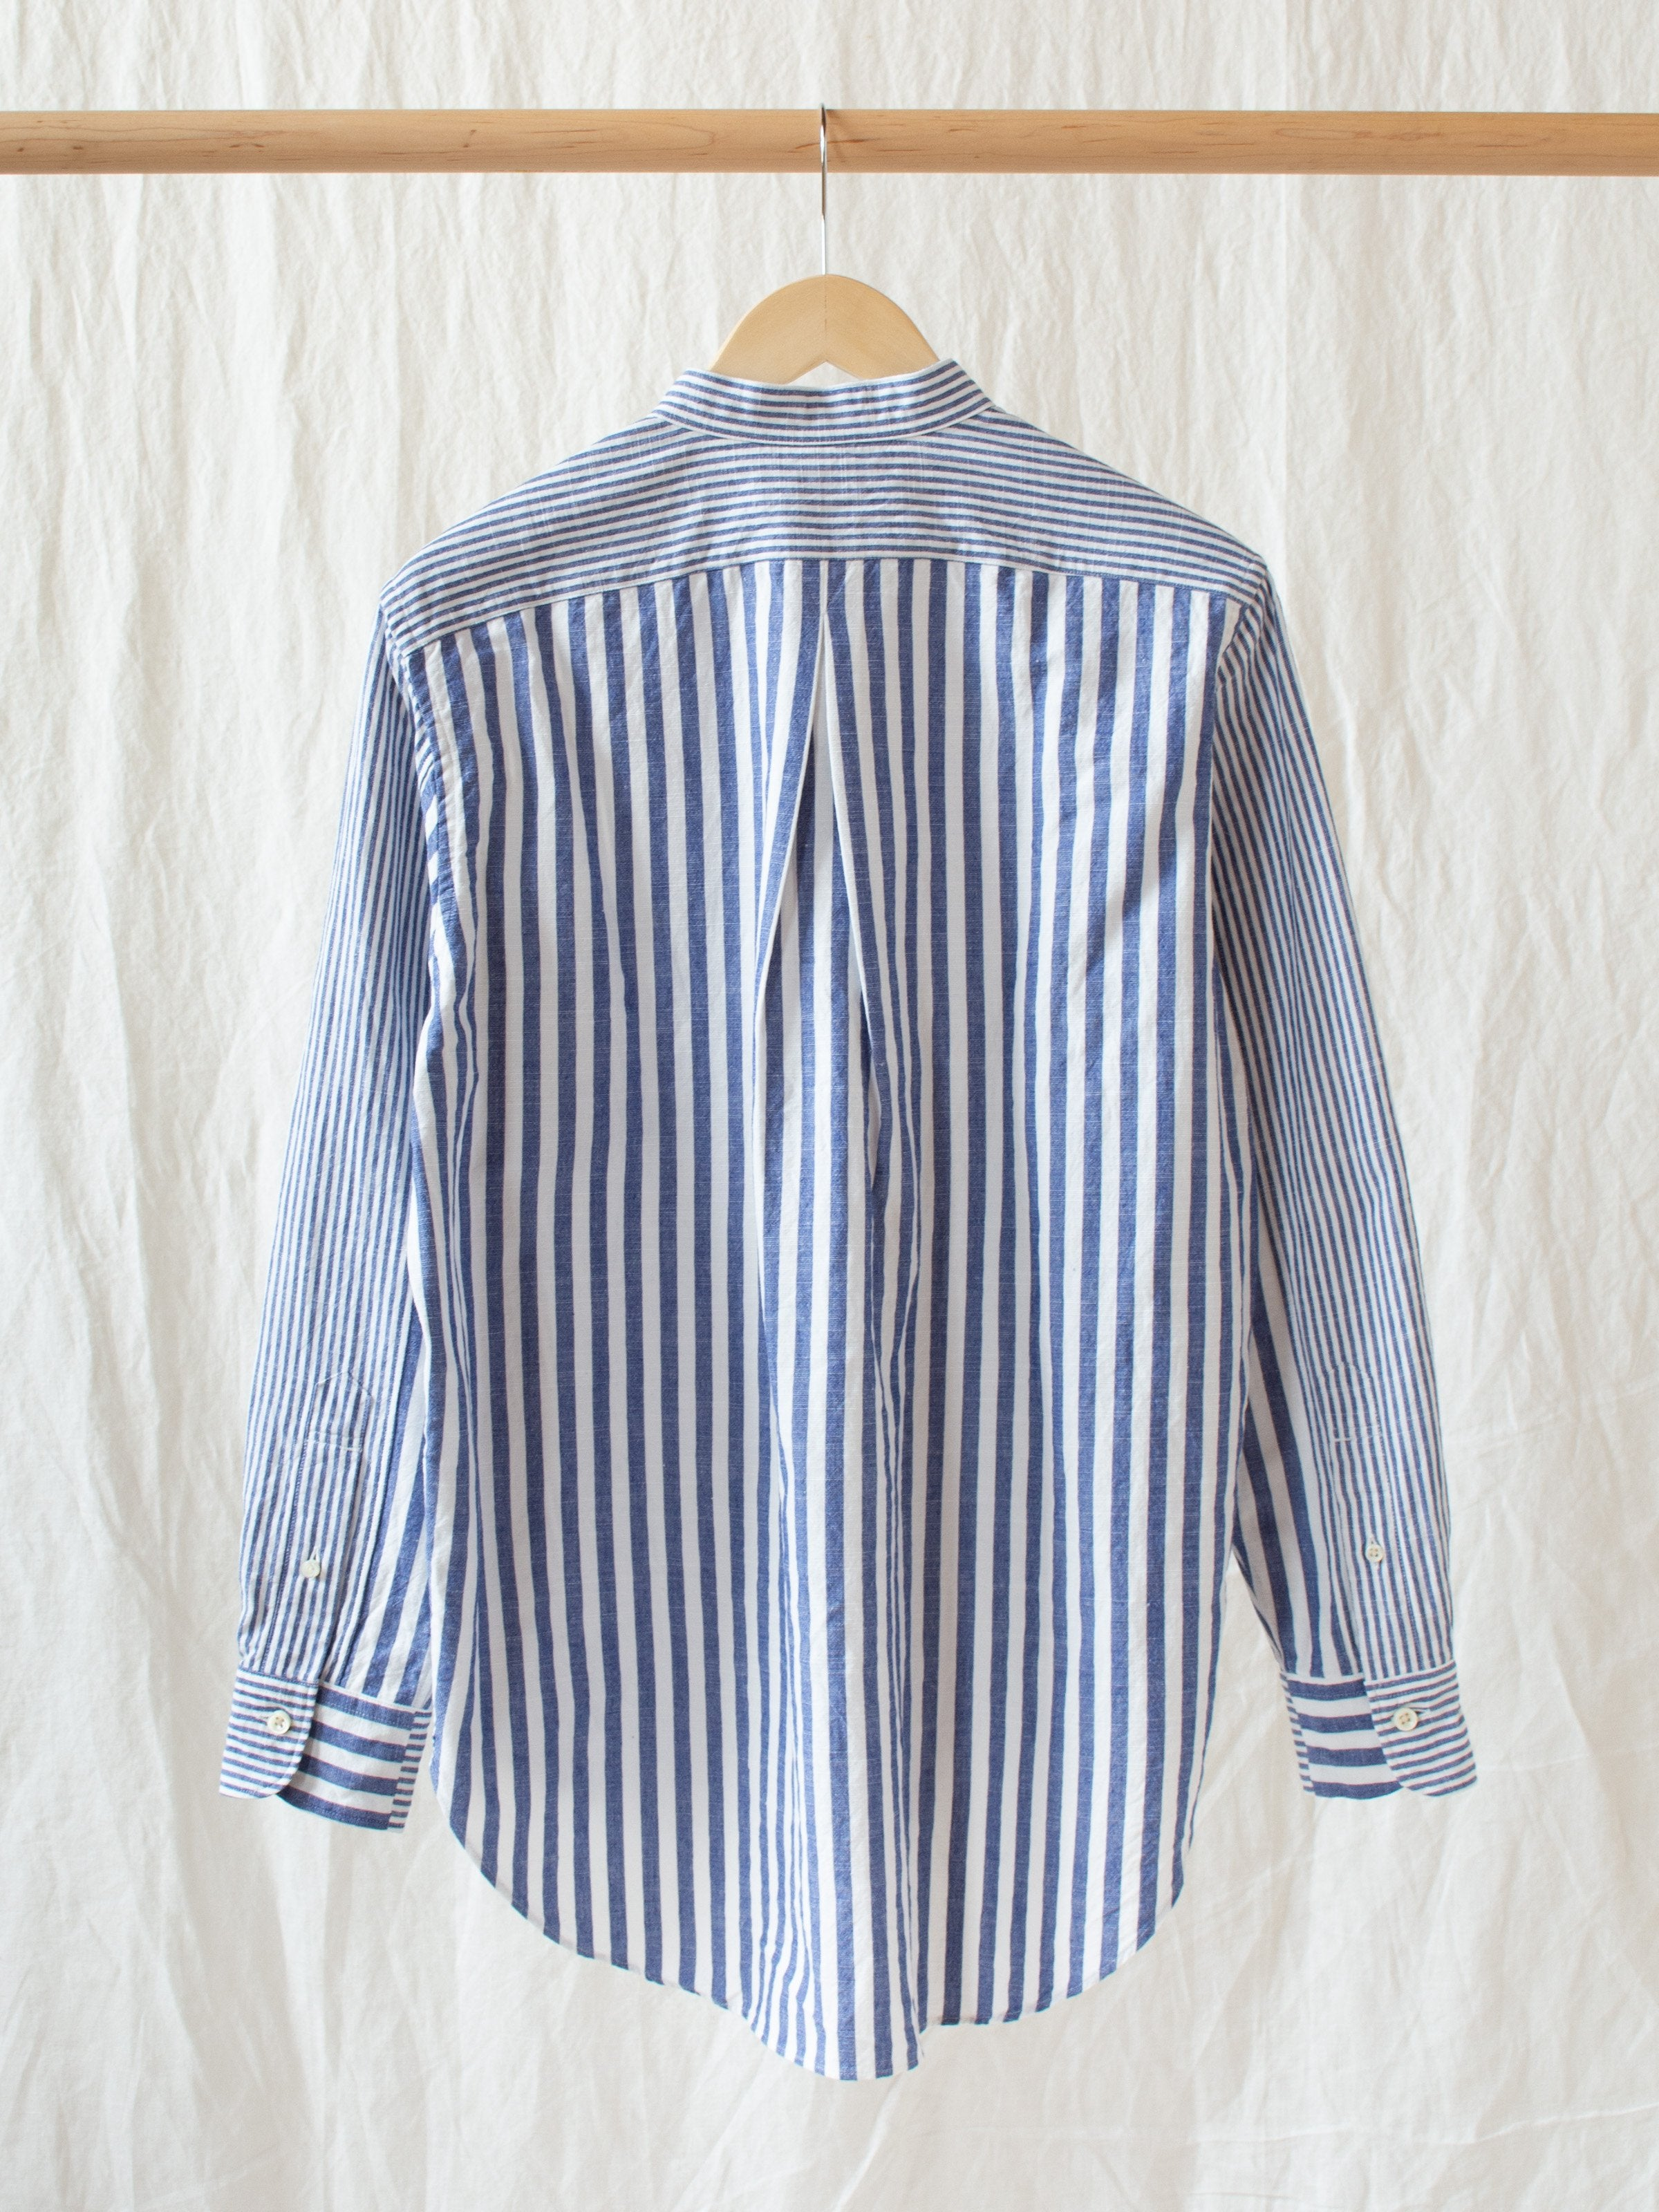 Namu Shop - Maillot Stand Combi Shirt - Blue Stripe